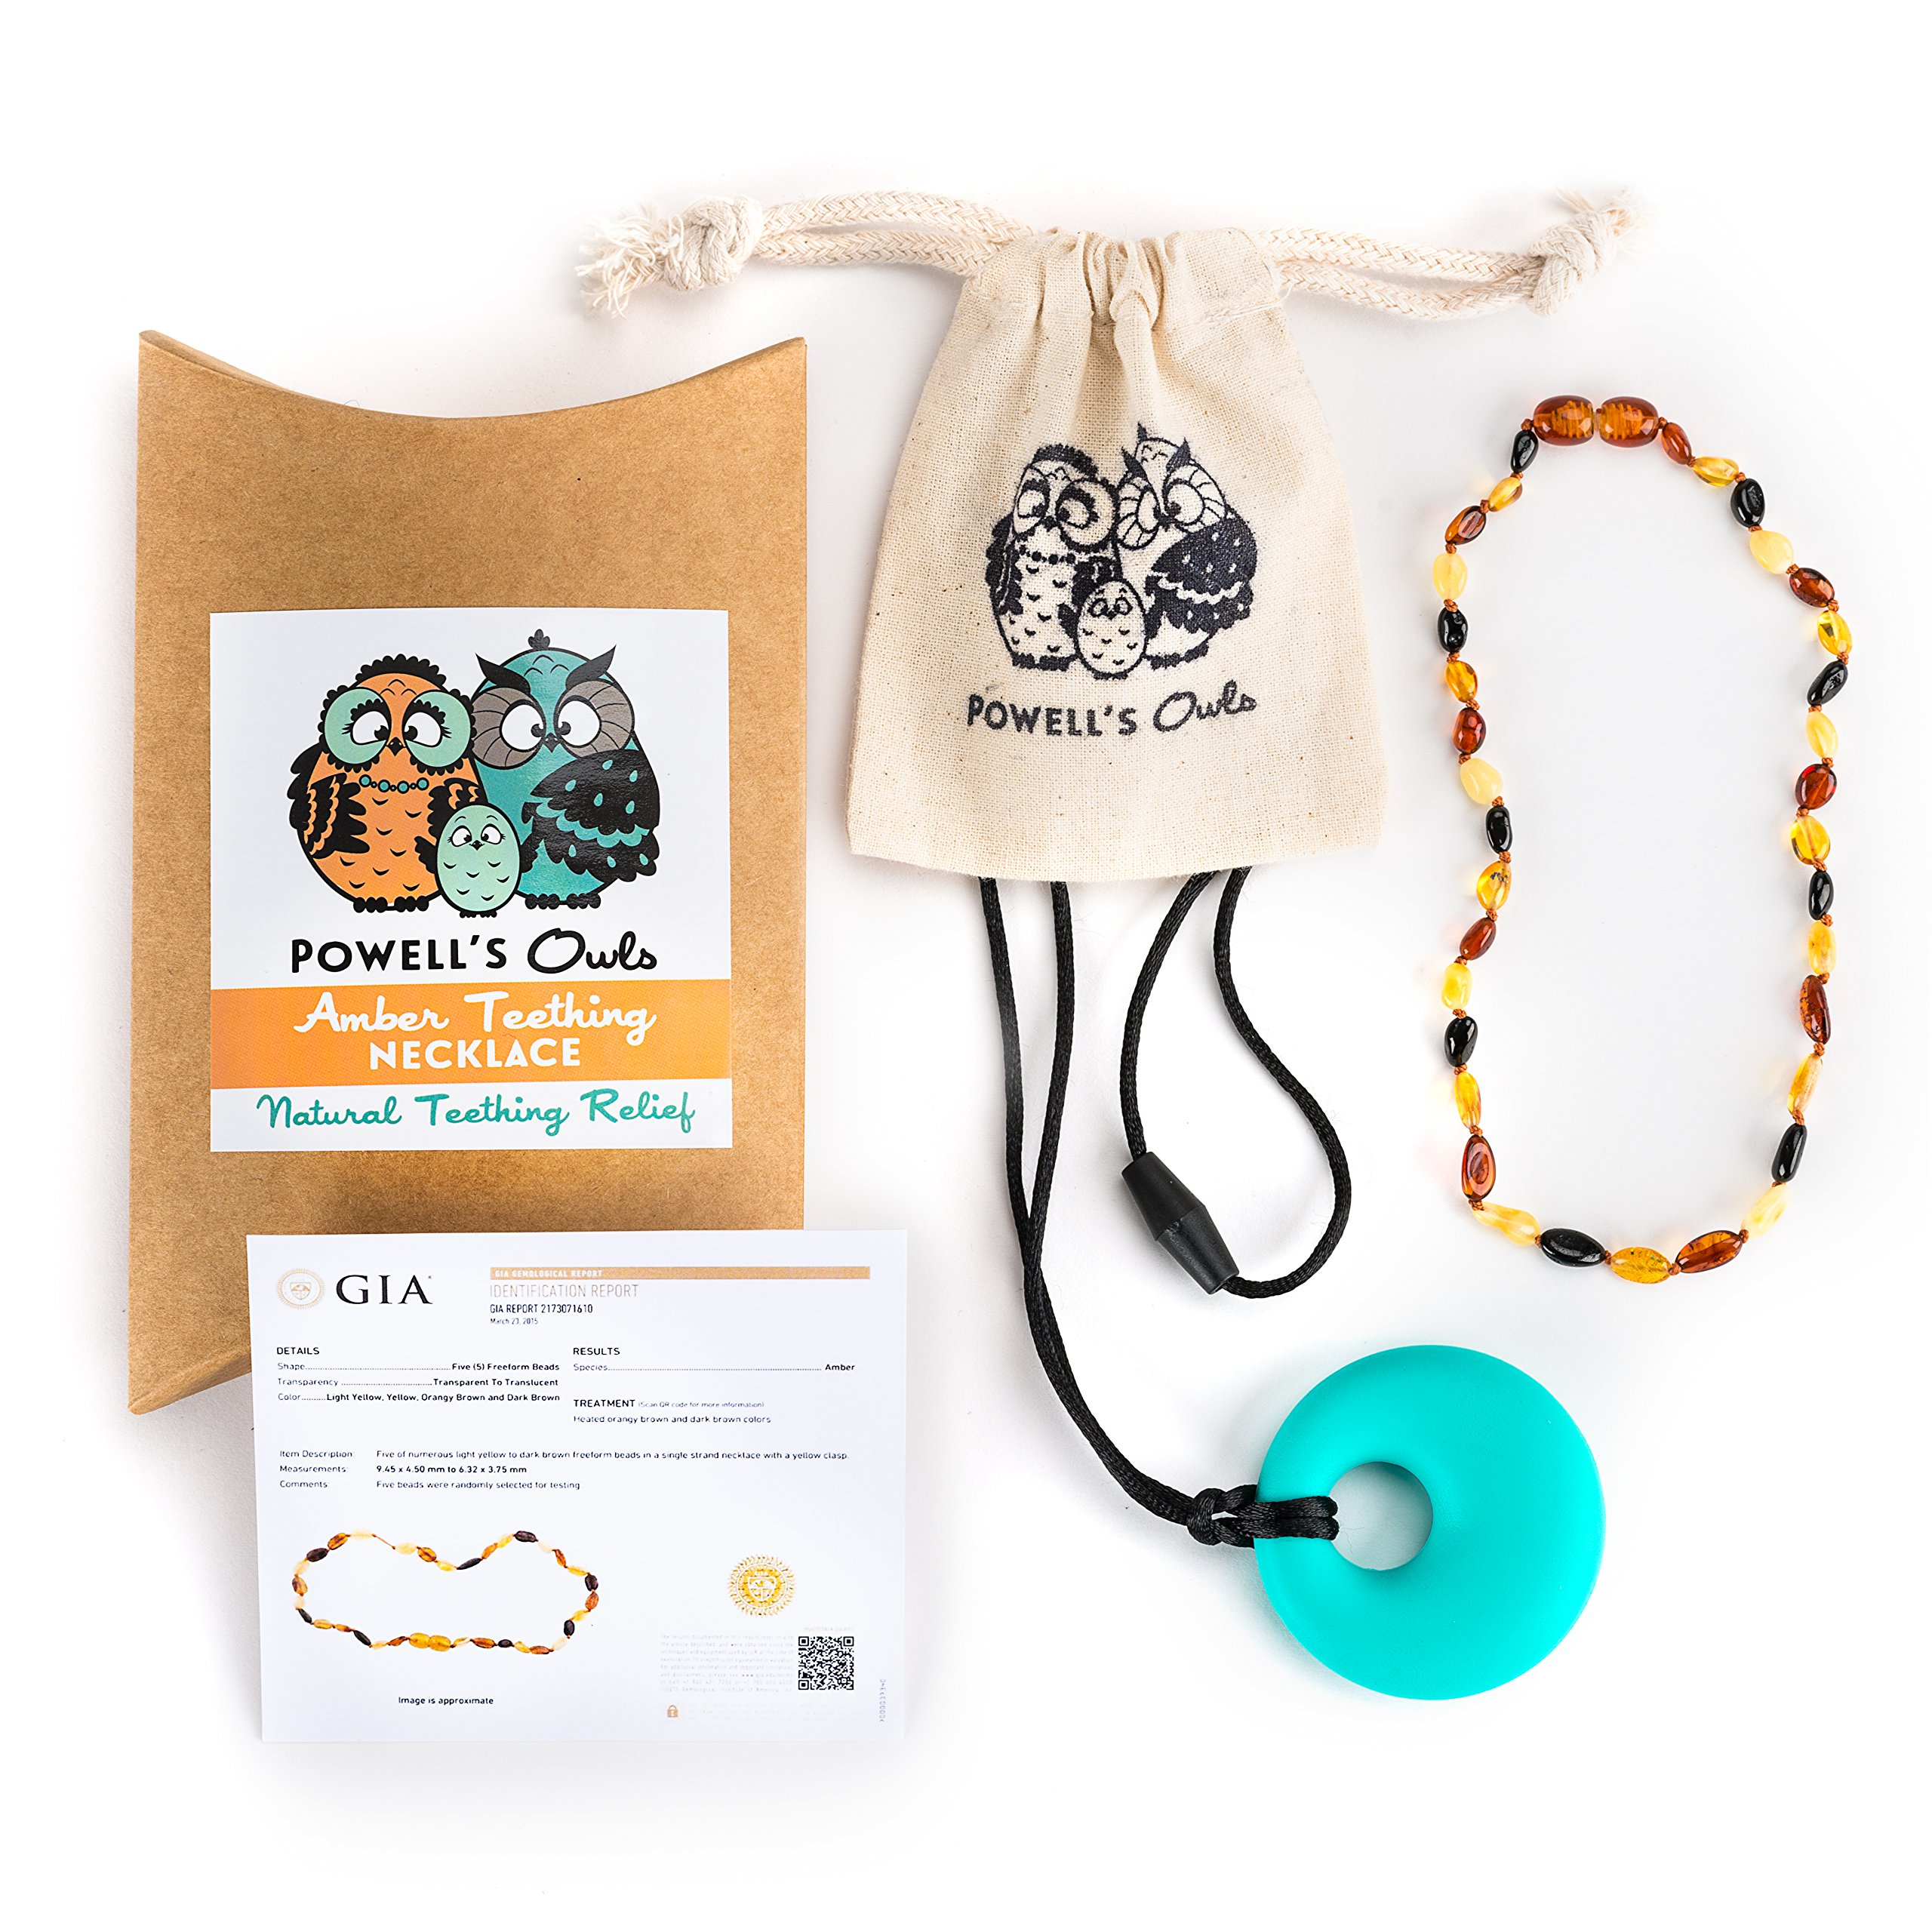 Baltic Amber Teething Necklace Gift Set + Free Silicone Teething Pendant (15 Value) Handcrafted, 100% USA Lab-Tested Authentic Amber - Natural Teething Pain Relief (Unisex - Multicolor - 12.5 inches)